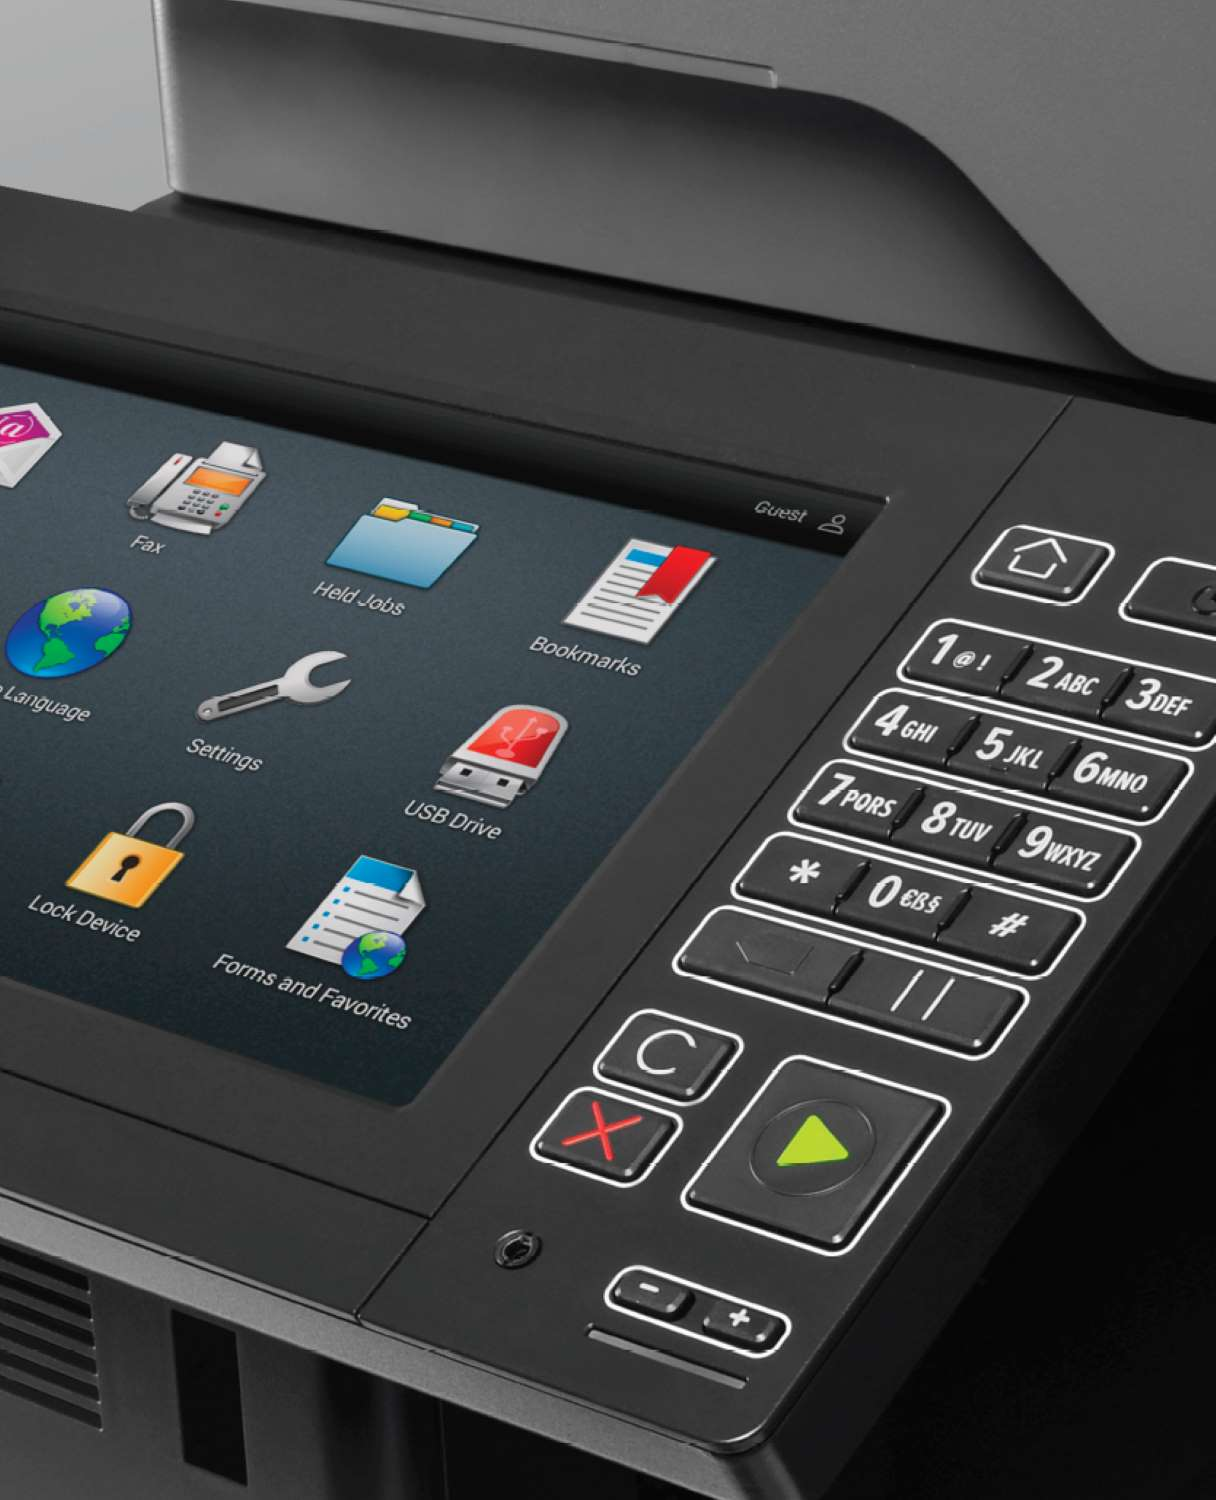 Tech4 Office Equipment in Carlisle, Suppliers of office printers across Cumbria and the Borders